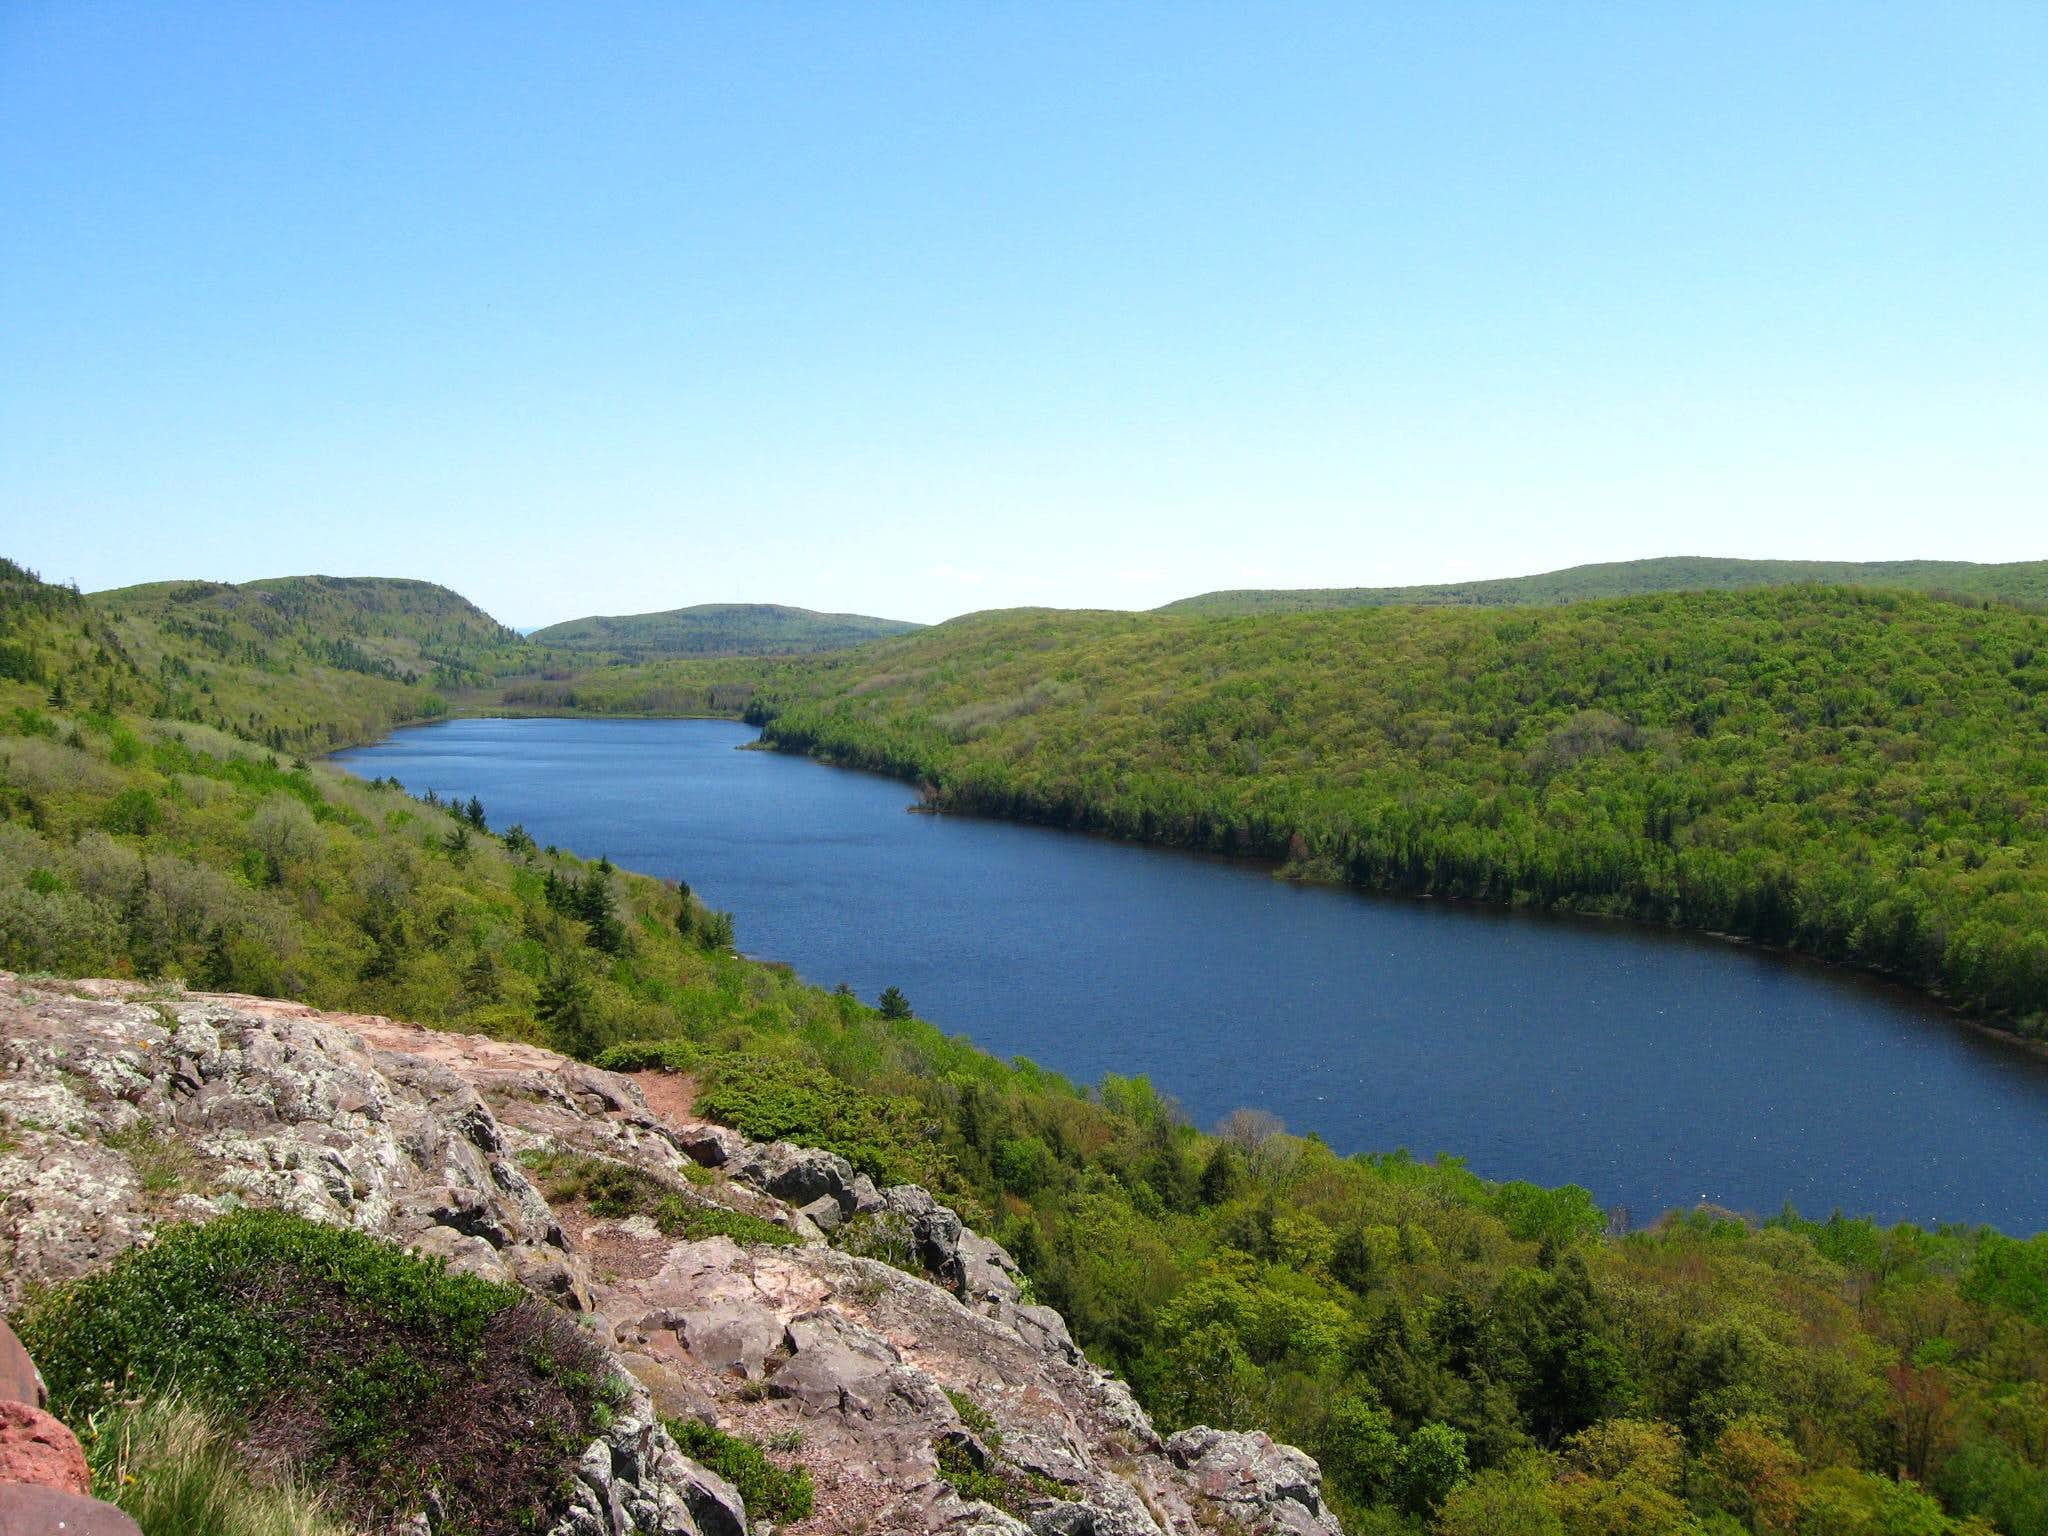 Backpacking the Porcupine Mountains, May 2009